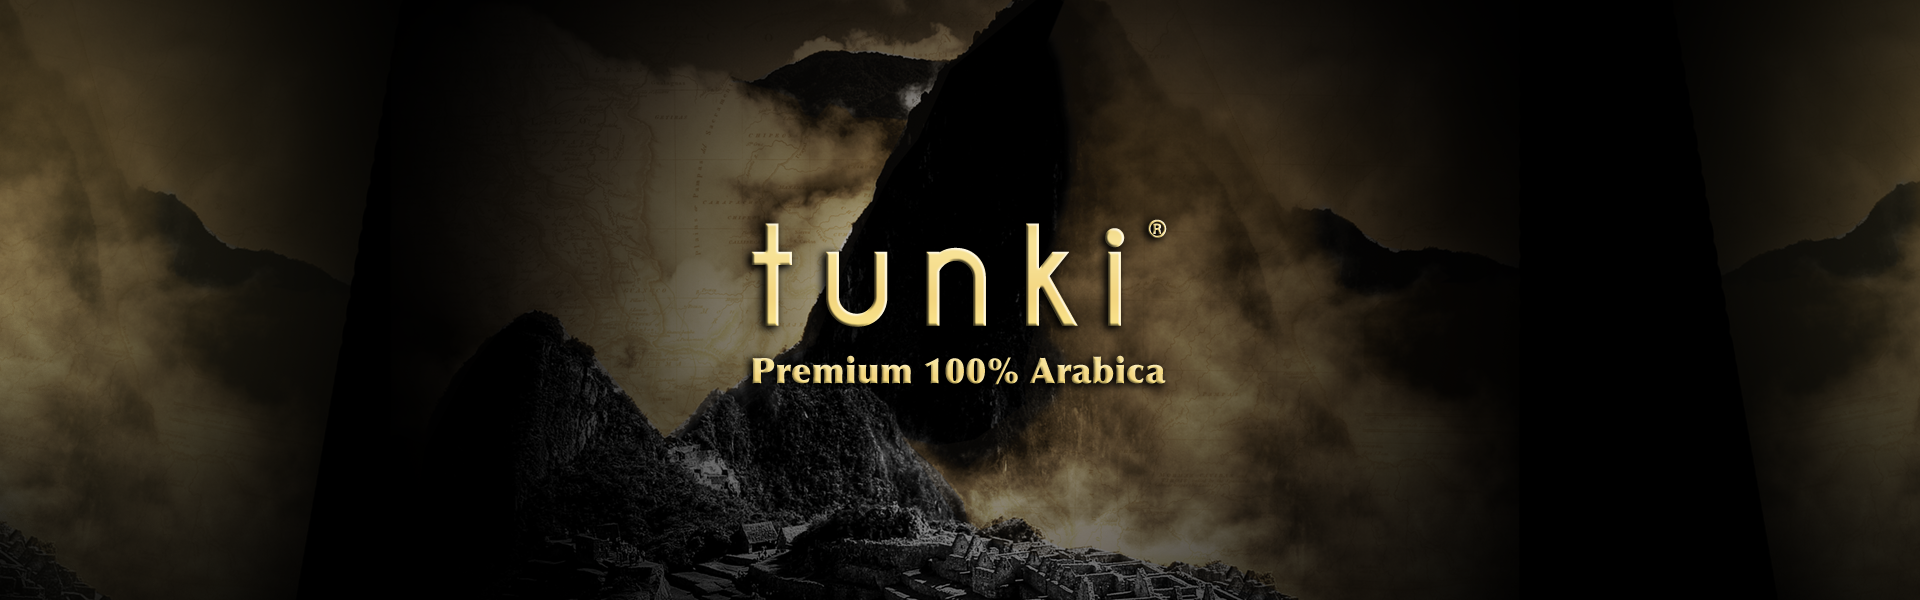 rijo42 | Tunki Official Supplier